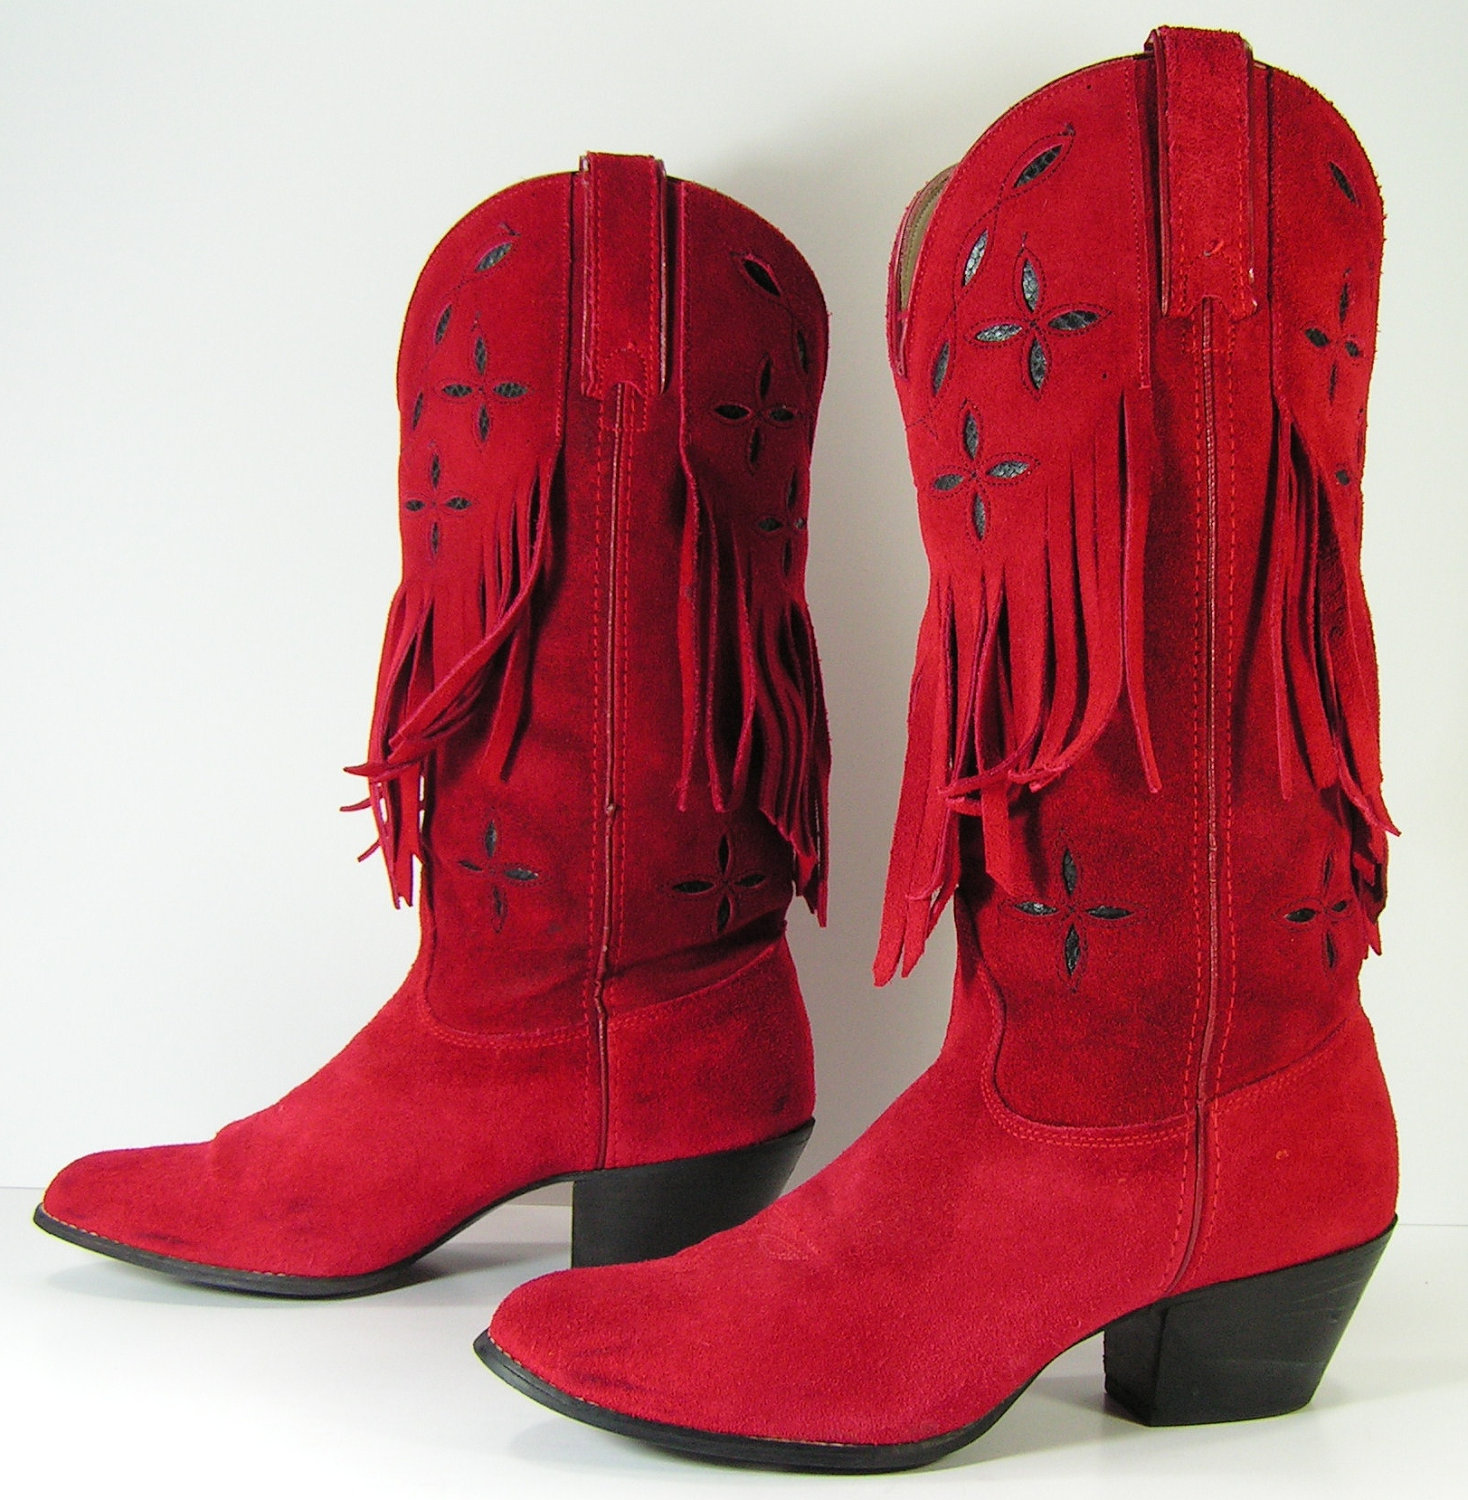 Awesome Western Chief Kids Sneaker Rain Boots $30 At Shopwesternchiefcom  Available For Men And Women, They Come In Black With A Choice Of A Red, White Or Gray